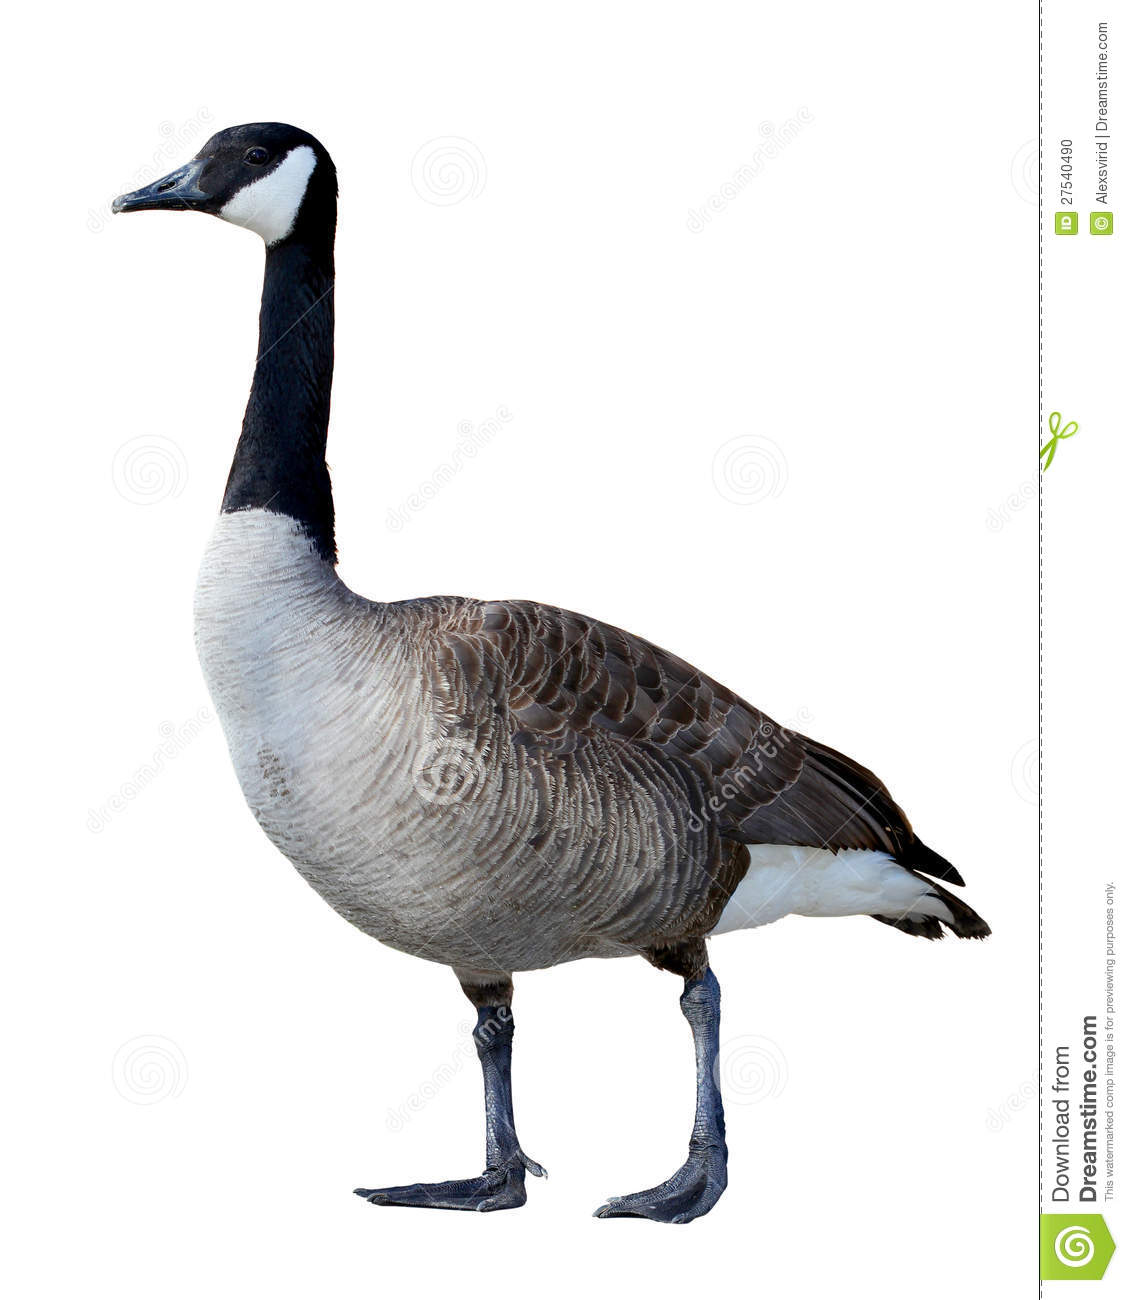 picture of a Canadian Goose that is isolated on white background.